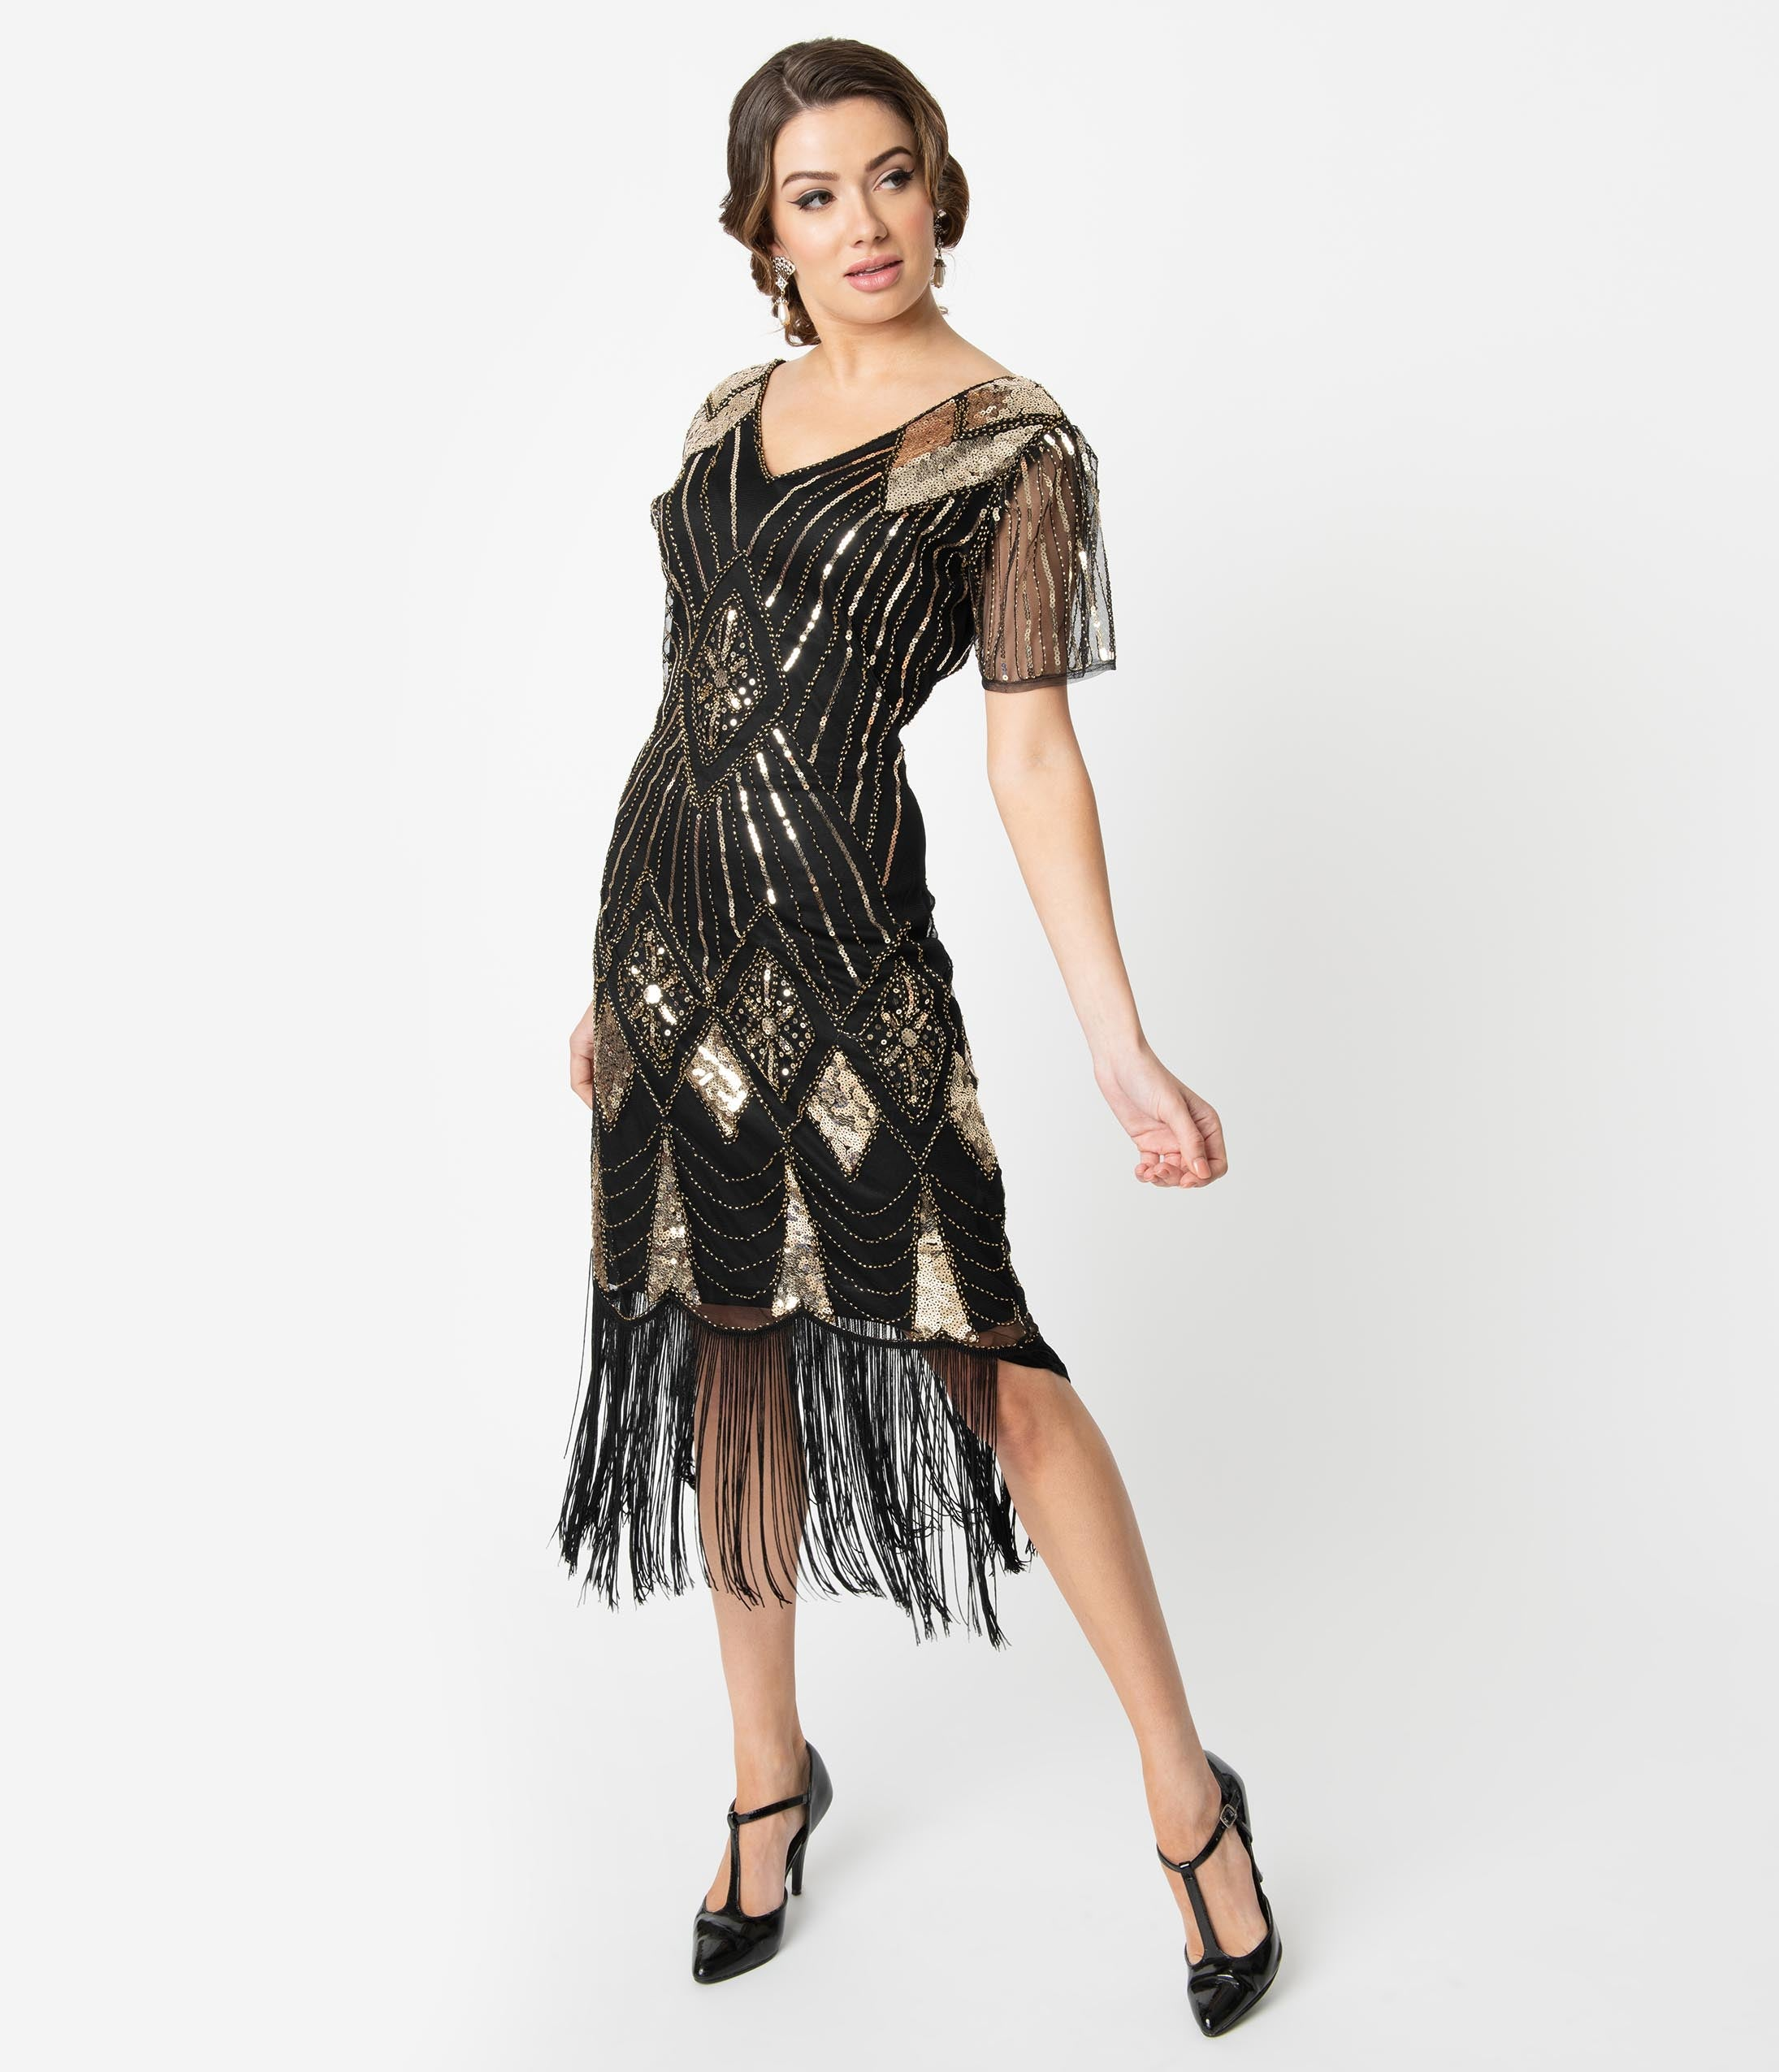 1920s Evening Dresses & Formal Gowns Unique Vintage 1920S Gold Sequin  Black Fringe Katriane Flapper Dress $98.00 AT vintagedancer.com